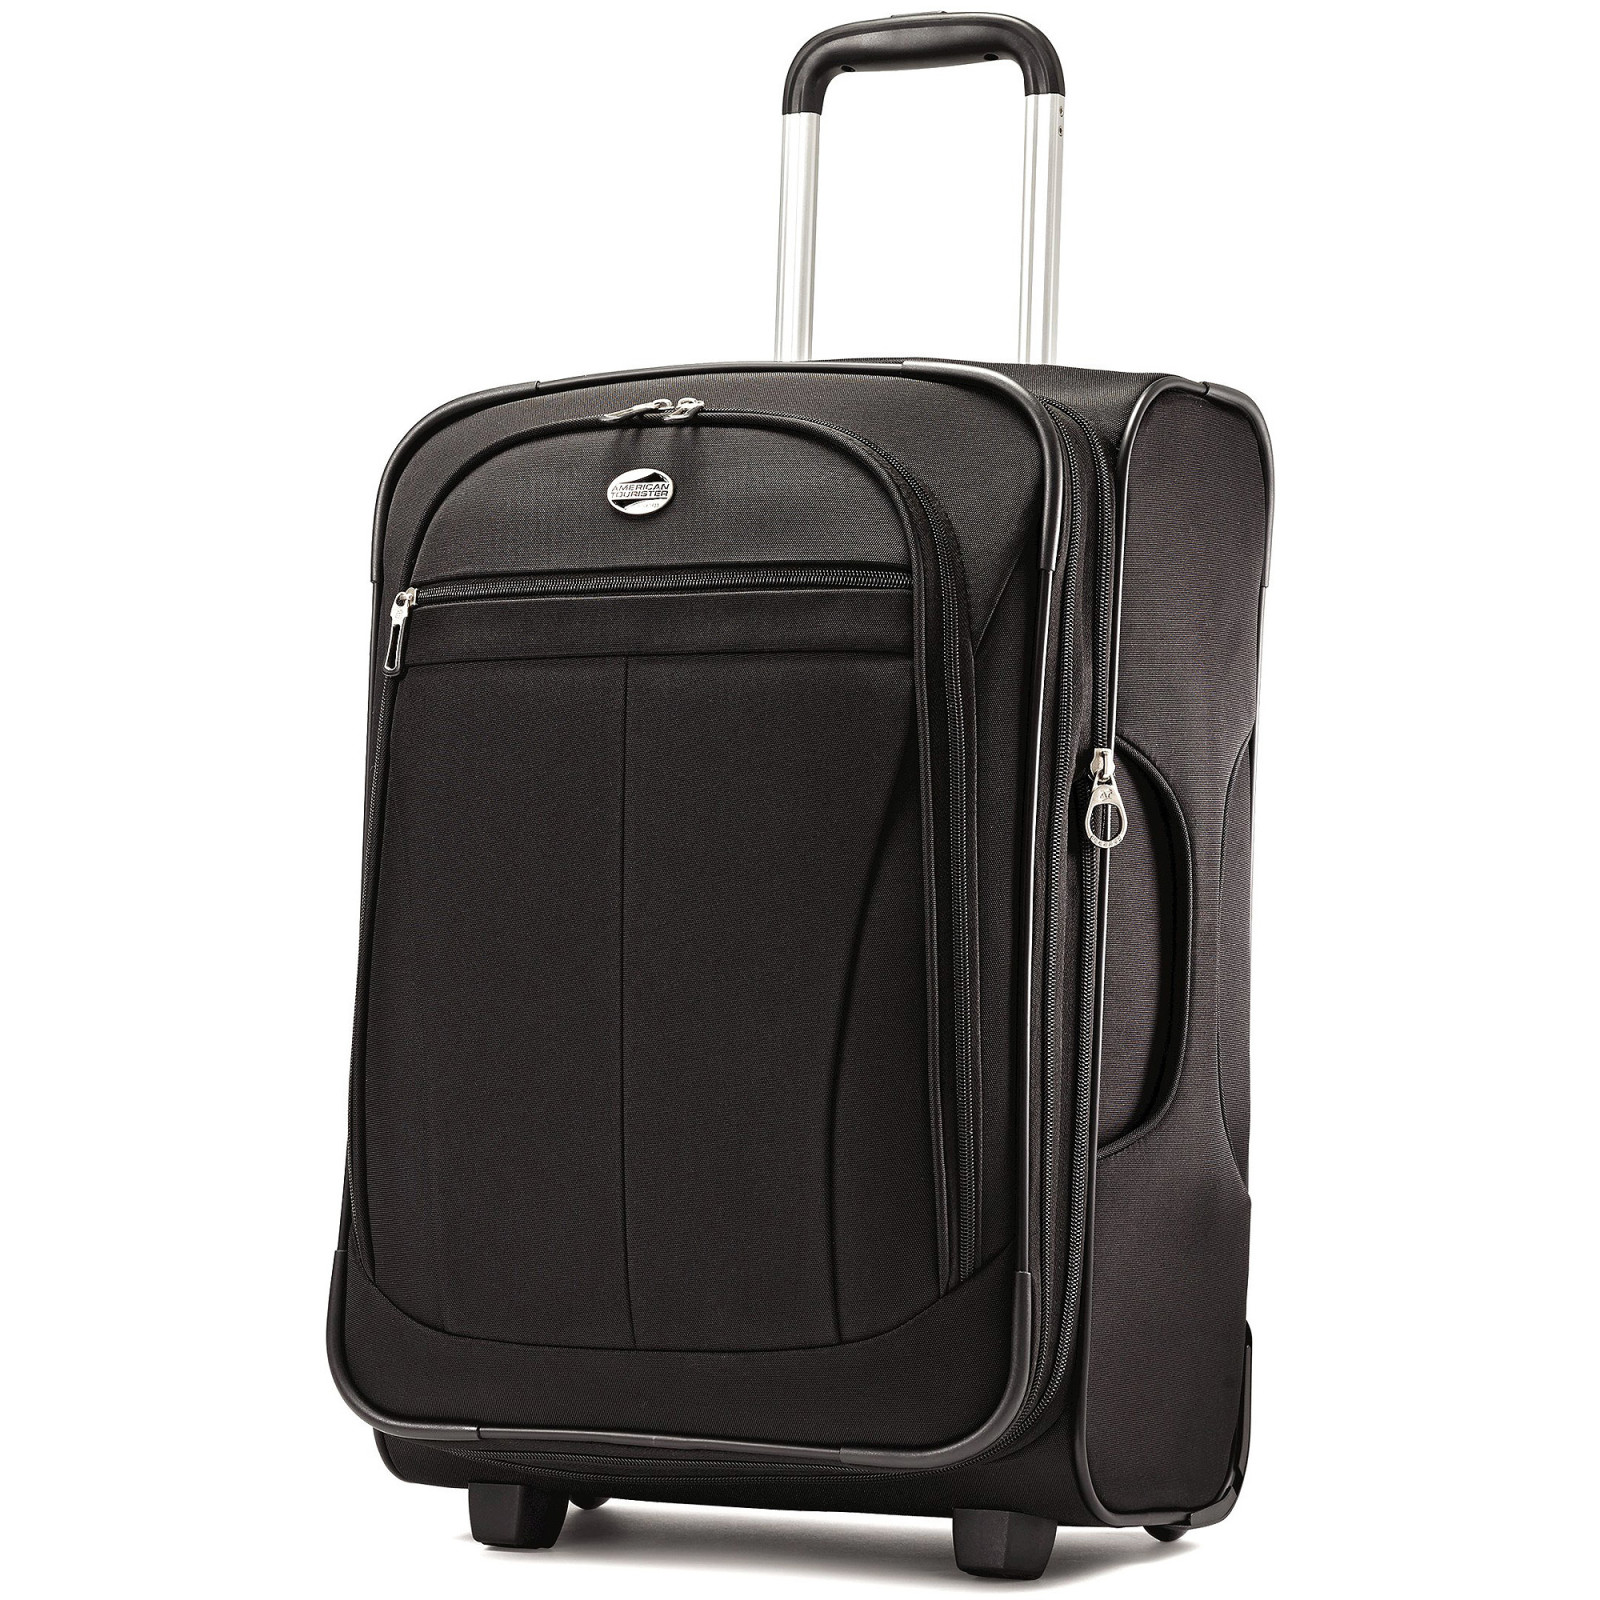 dd1be002b52 American Tourister Atmosphera Upright Suitcase Luggage Travel Bags Trolley  New!